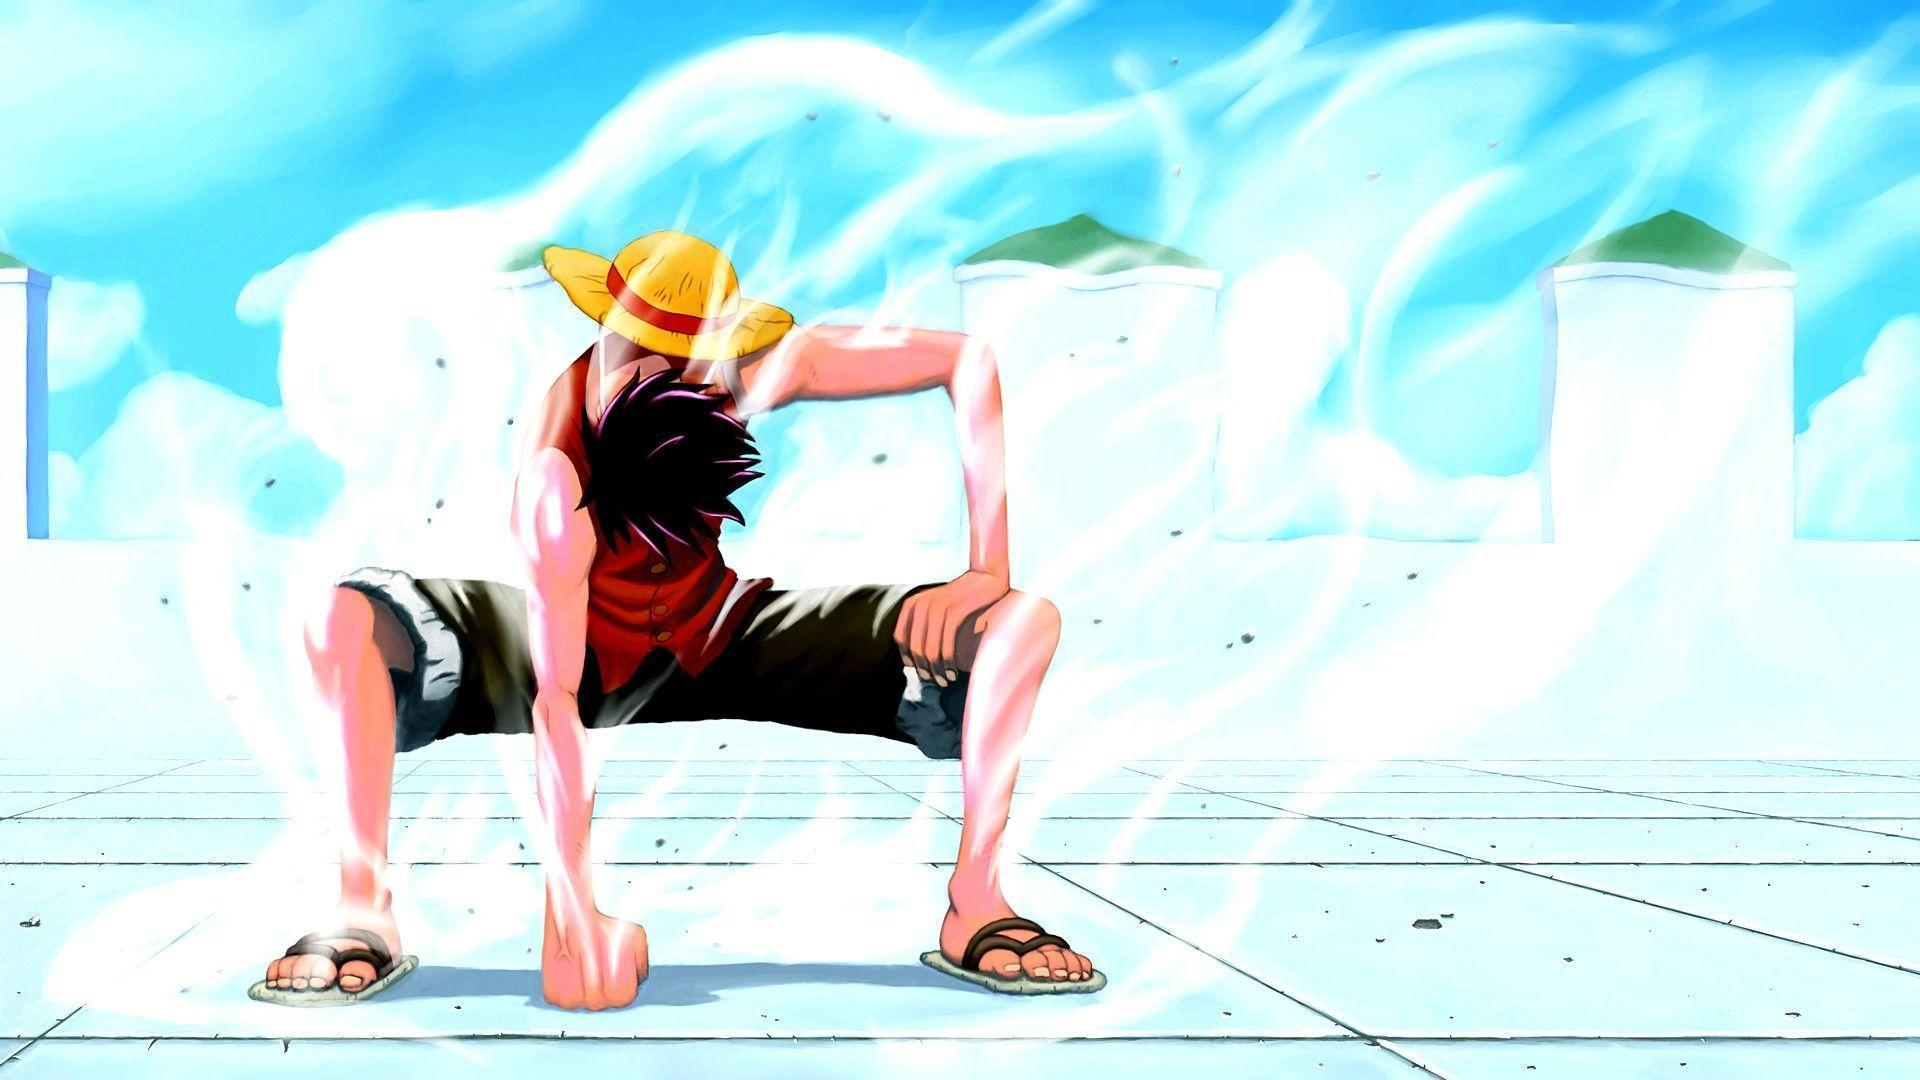 Wallpapers For > Luffy Wallpapers Hd 3d